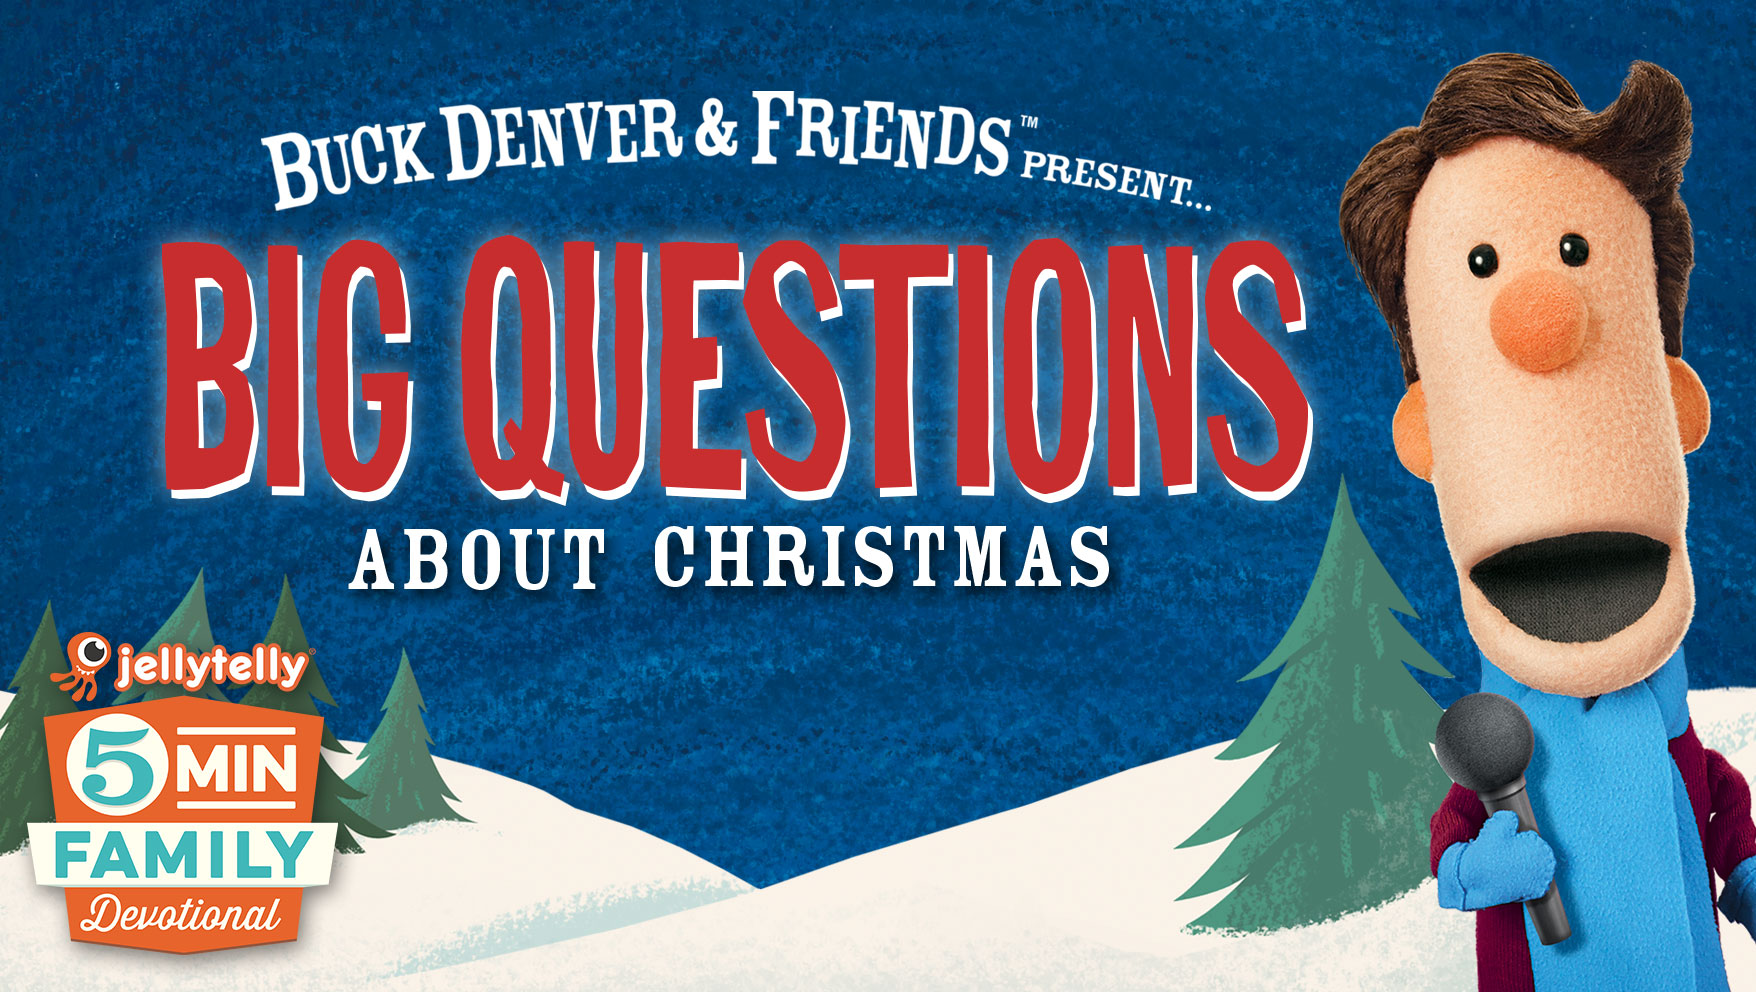 Big Questions about Christmas - A 5 Minute Family Devotional Plan